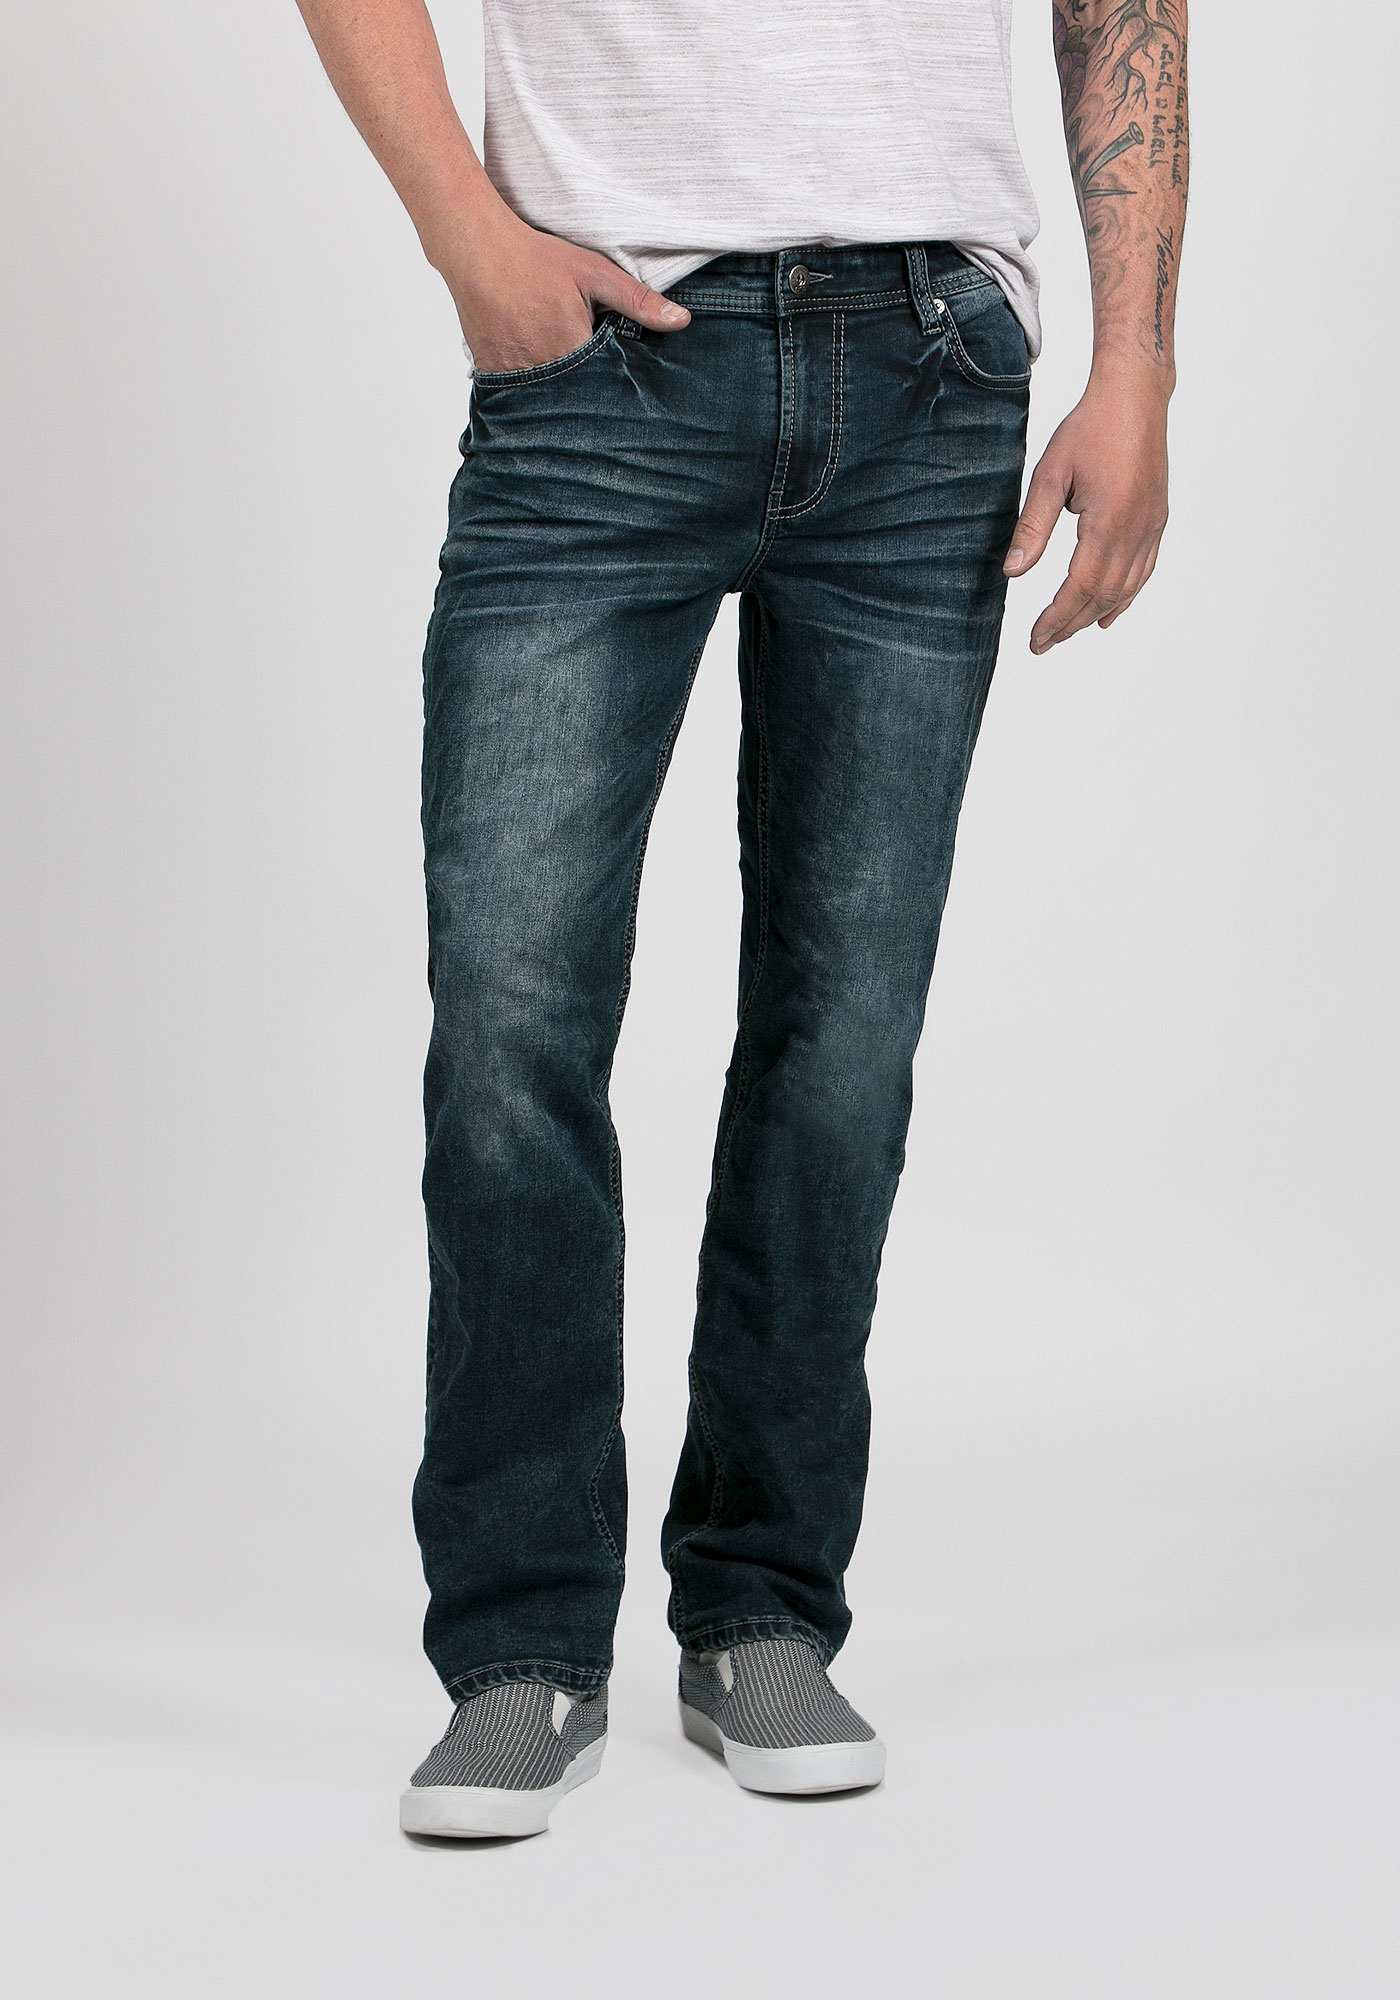 Slim Straight Denim Jeans. You like the feel of the classic straight-leg jeans, but you're looking for something that fits you a little better. Slim straight denim jeans are perfect for you. While they won't cling, they're casual fitted around the seat and thigh area to add a little shape to your legs. They're also extremely comfortable.